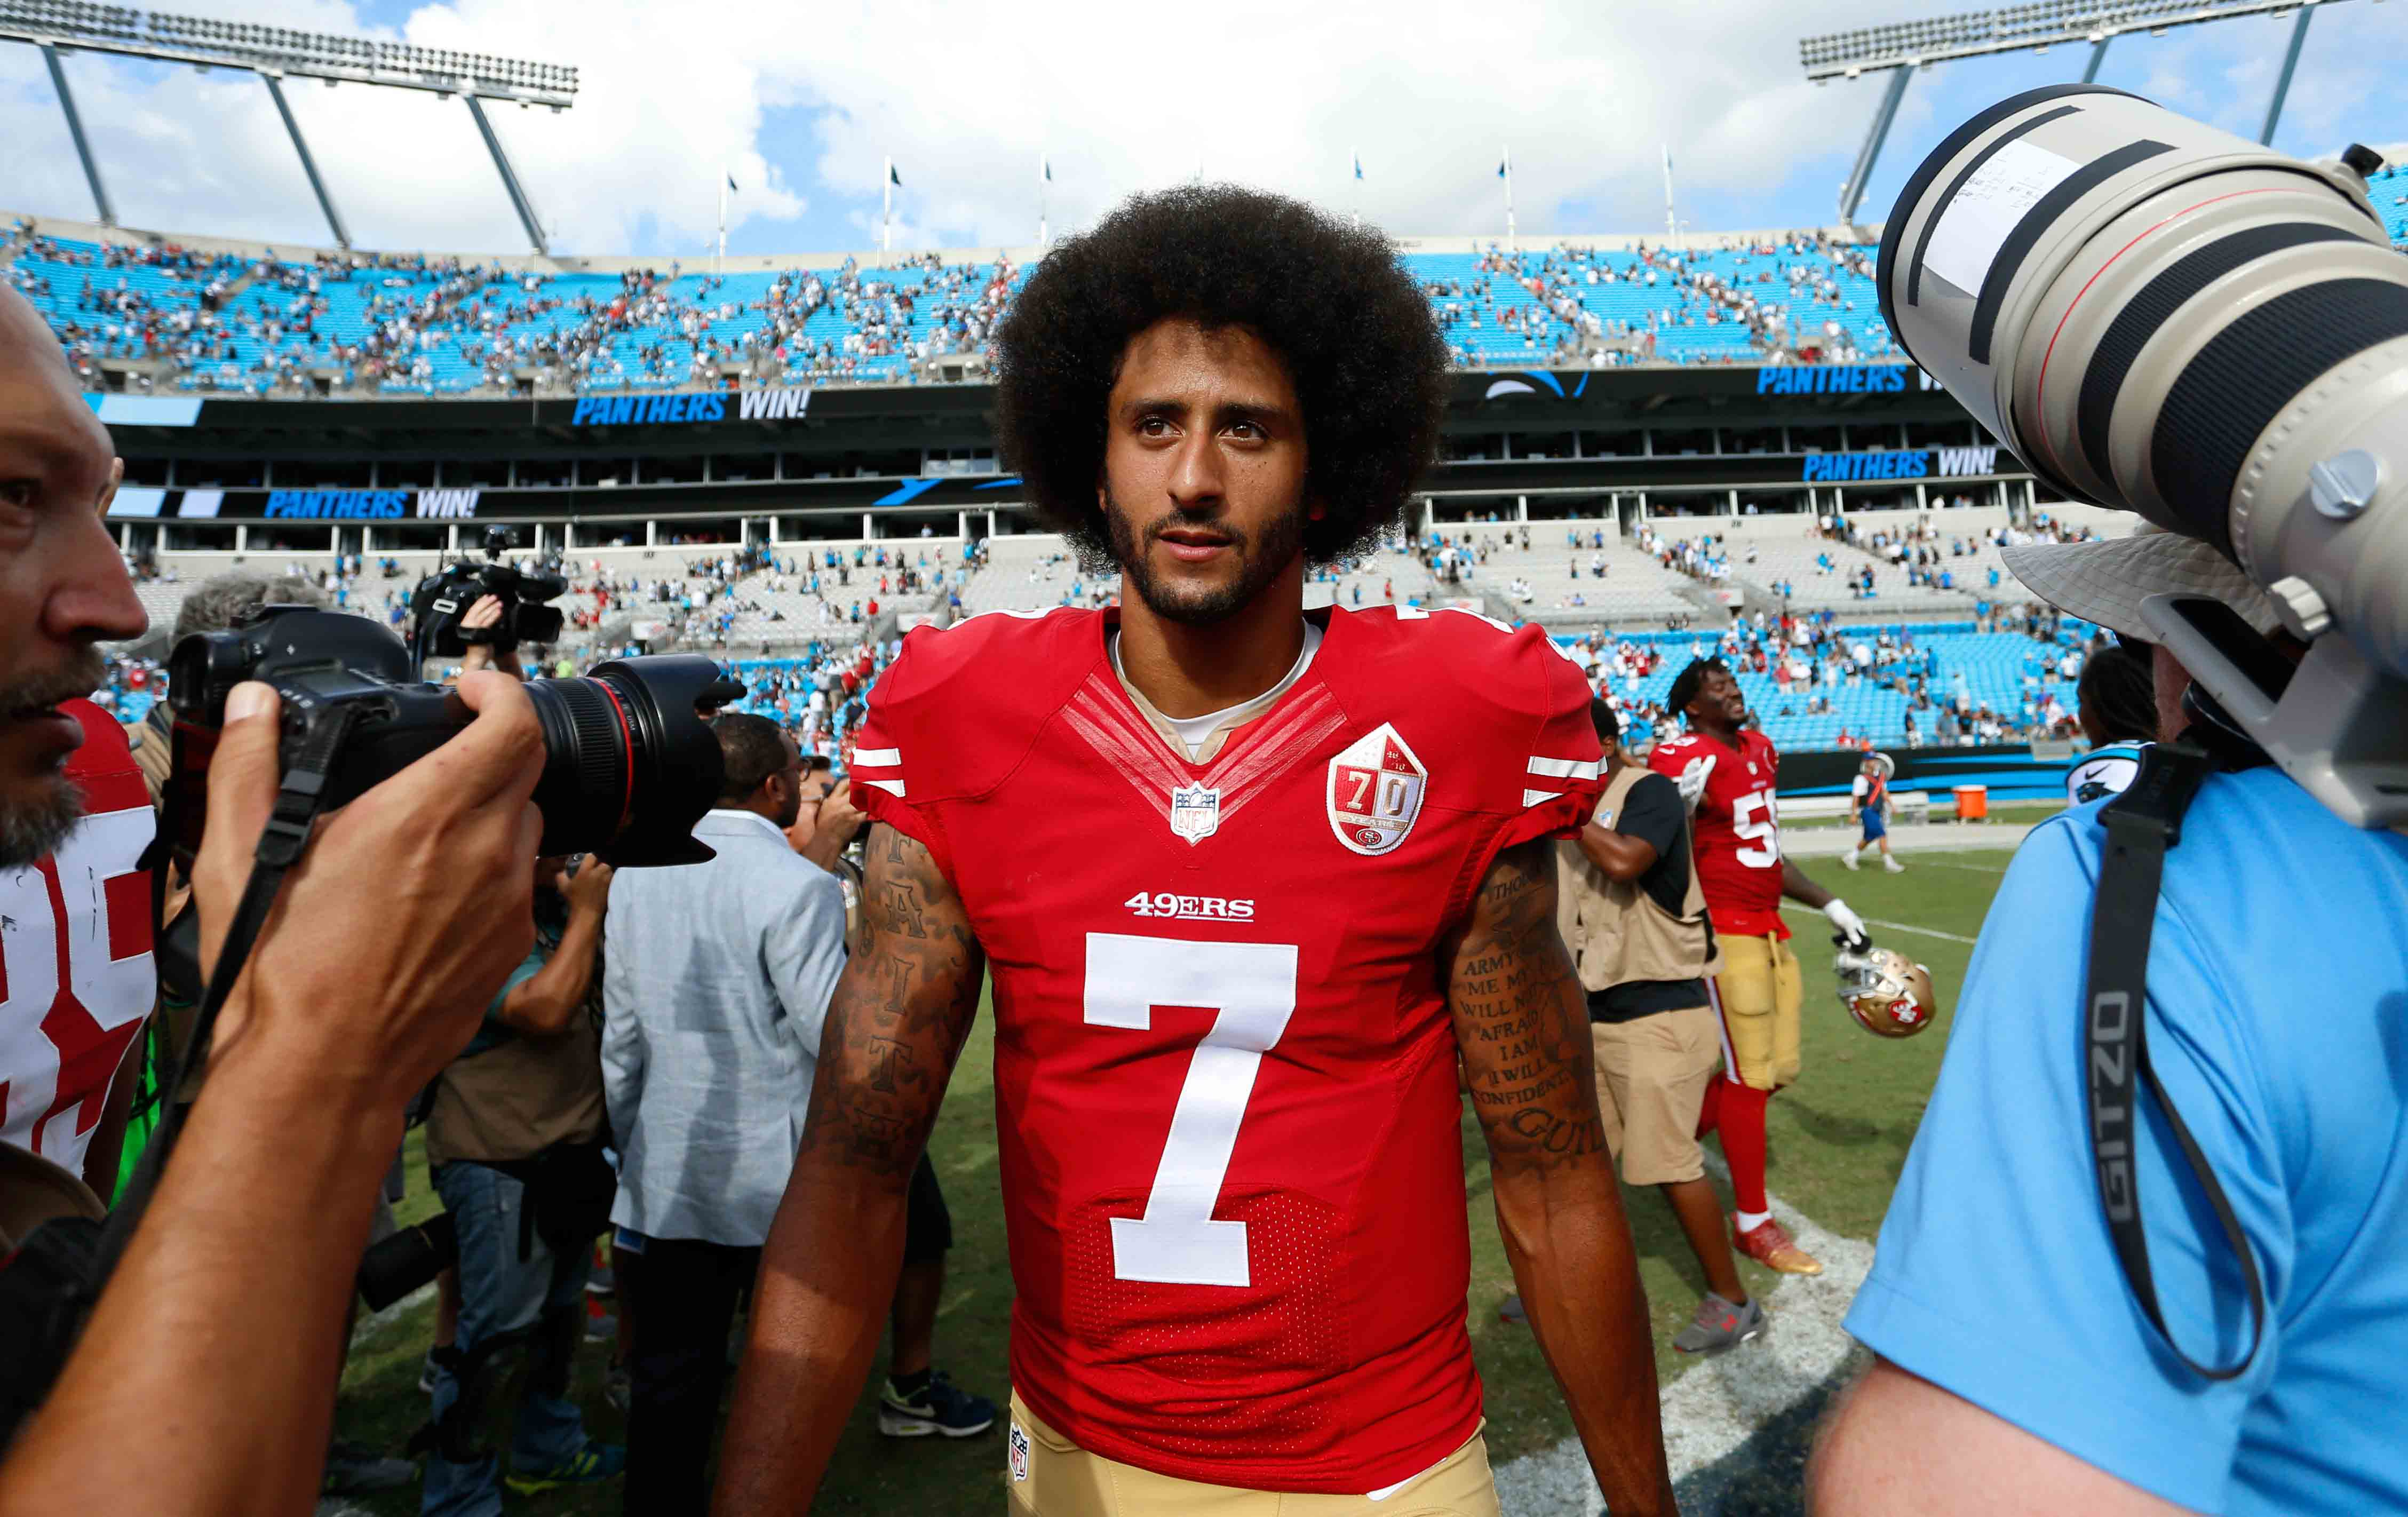 Colin Kaepernick: Colin Kaepernick Has A Right To Hate Both Candidates